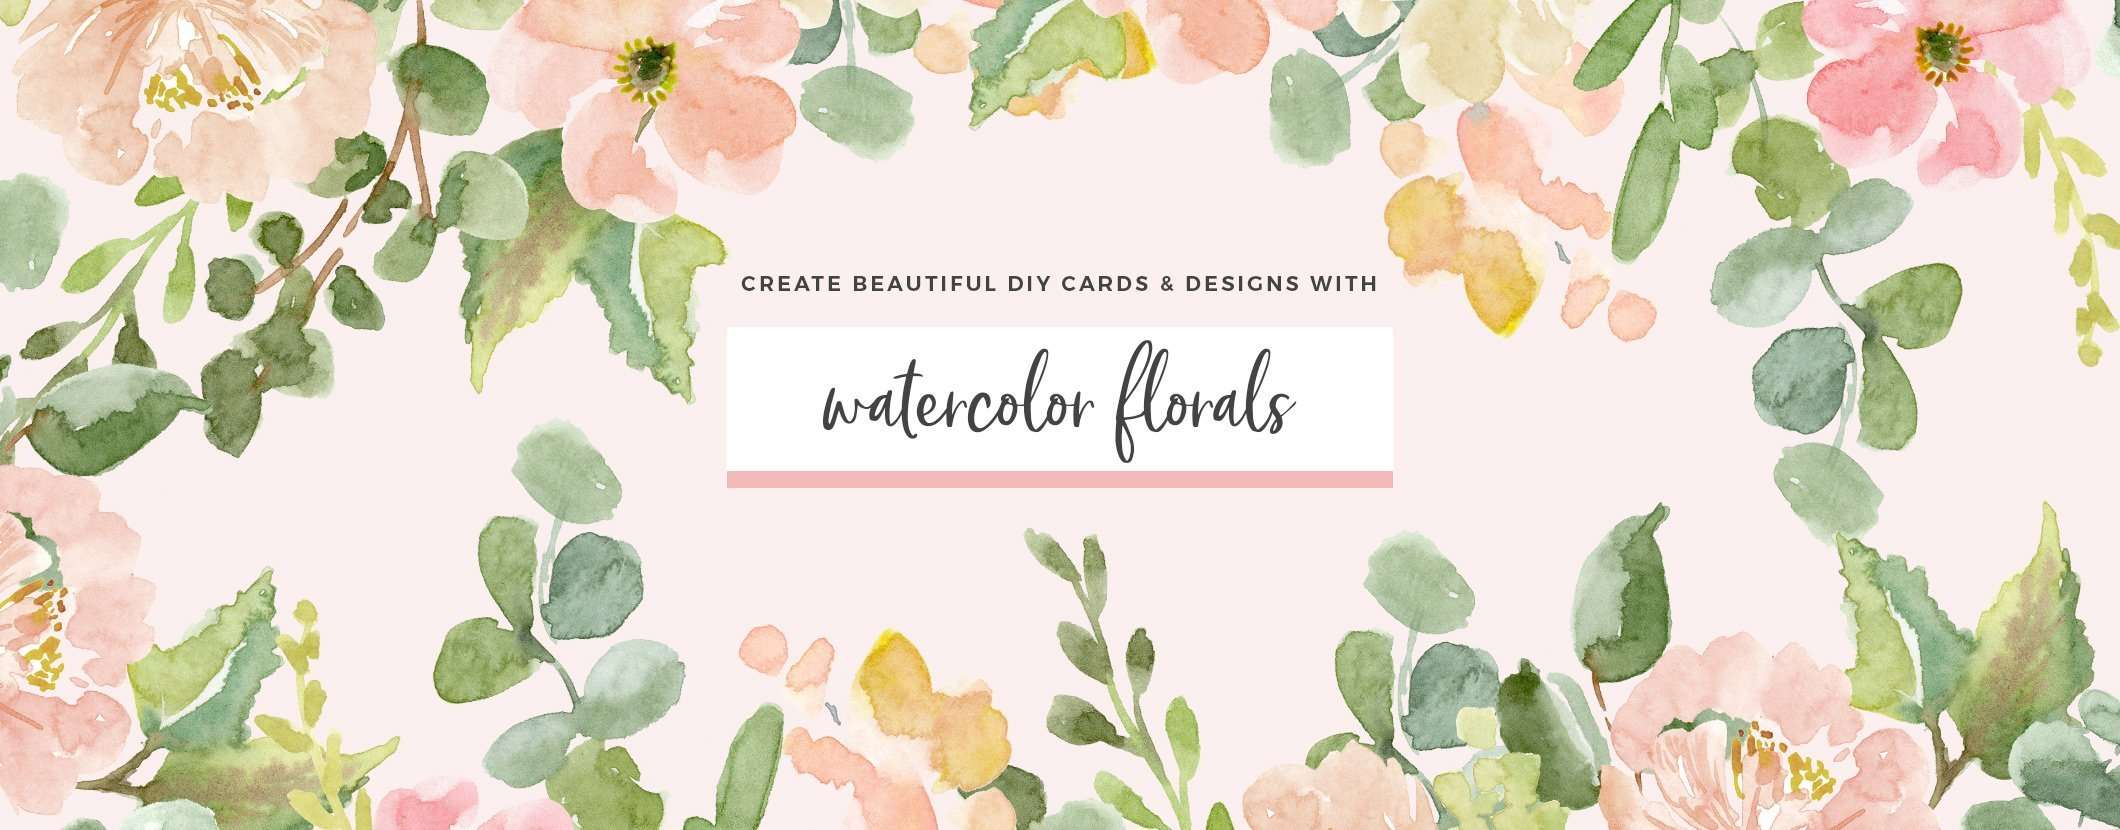 Floral Watercolor Clipart for wedding invitations logos branding birthday party invites DIY stationery